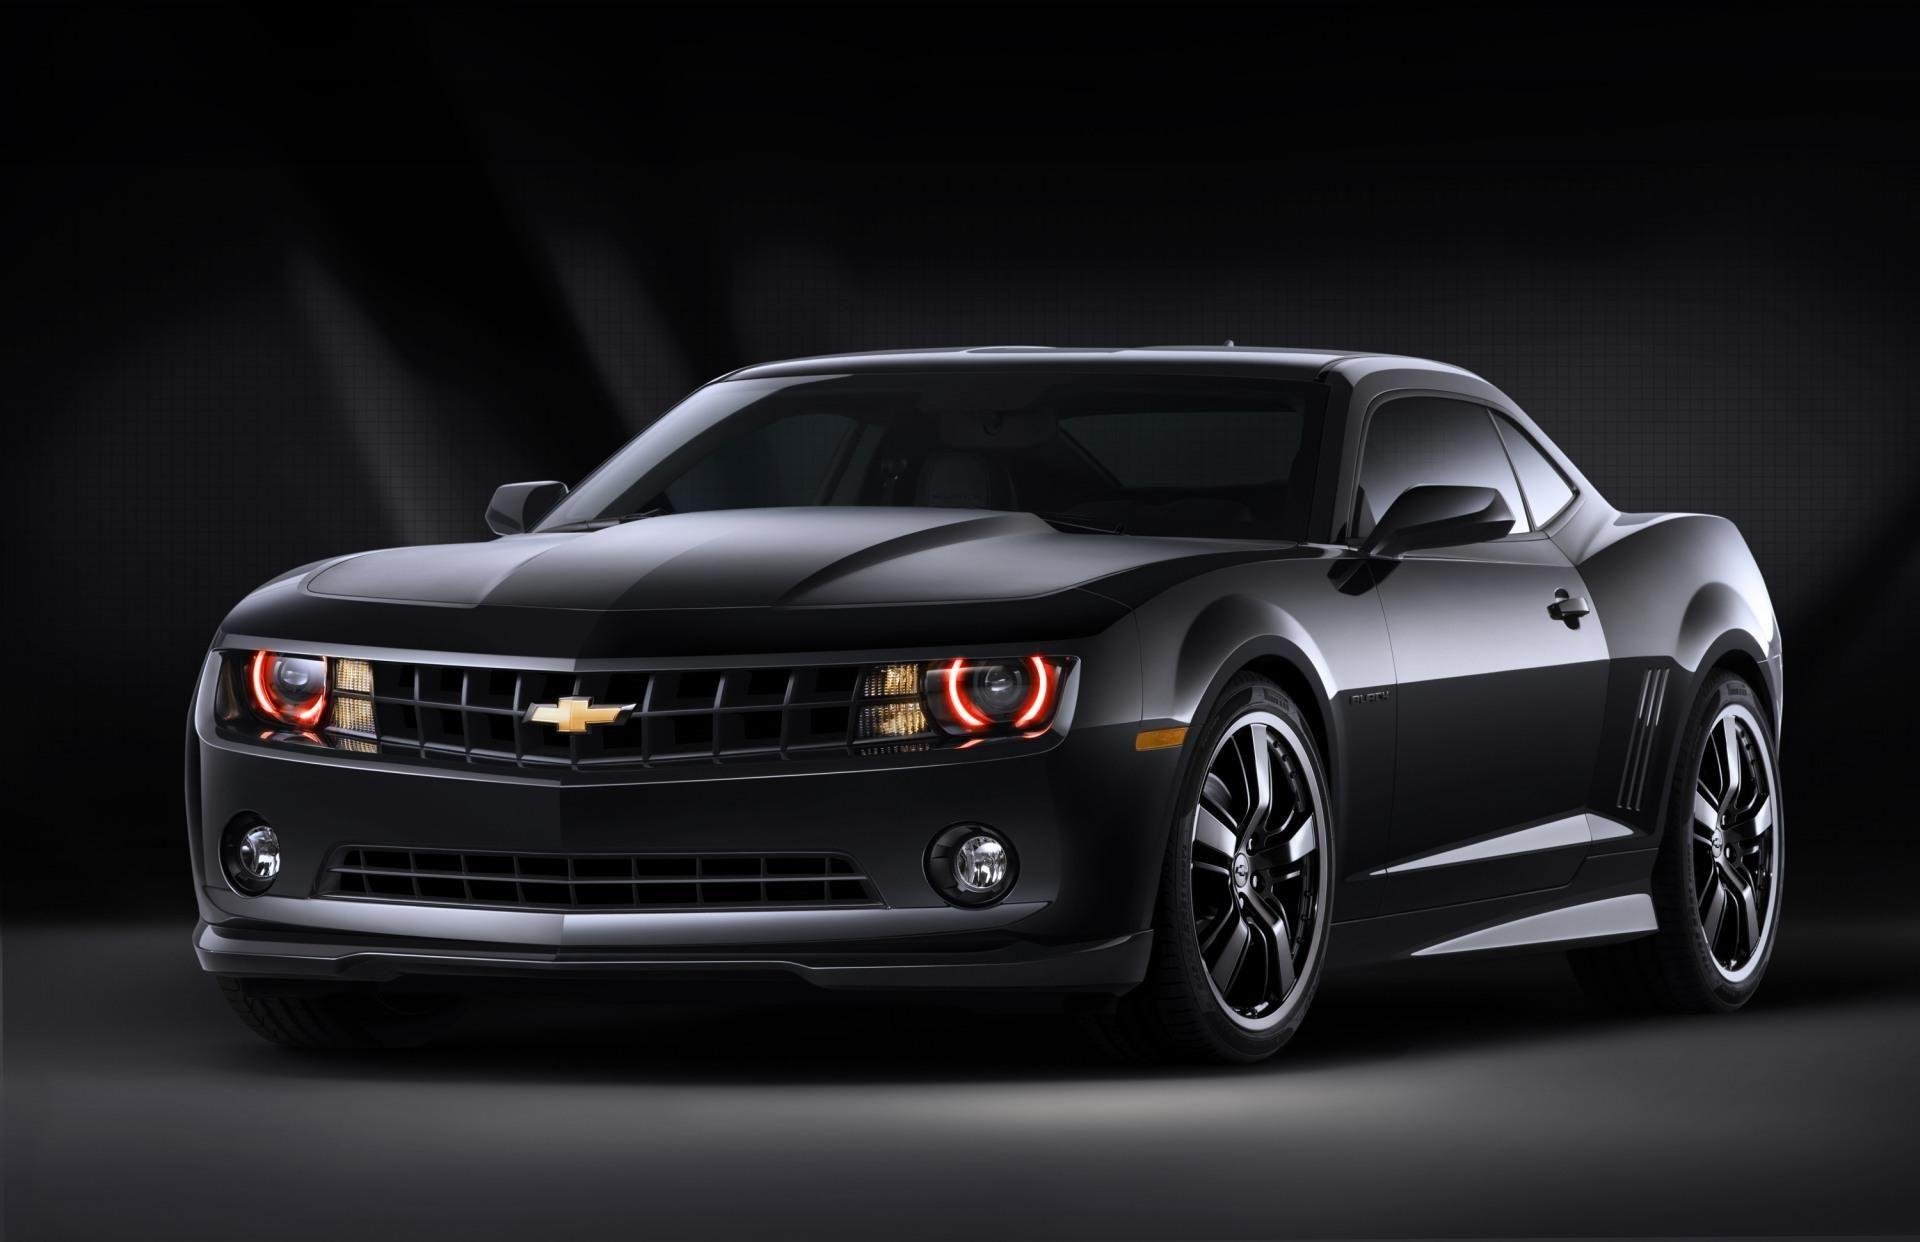 2010 Chevrolet Camaro Black Concept Wallpaper and Image Gallery